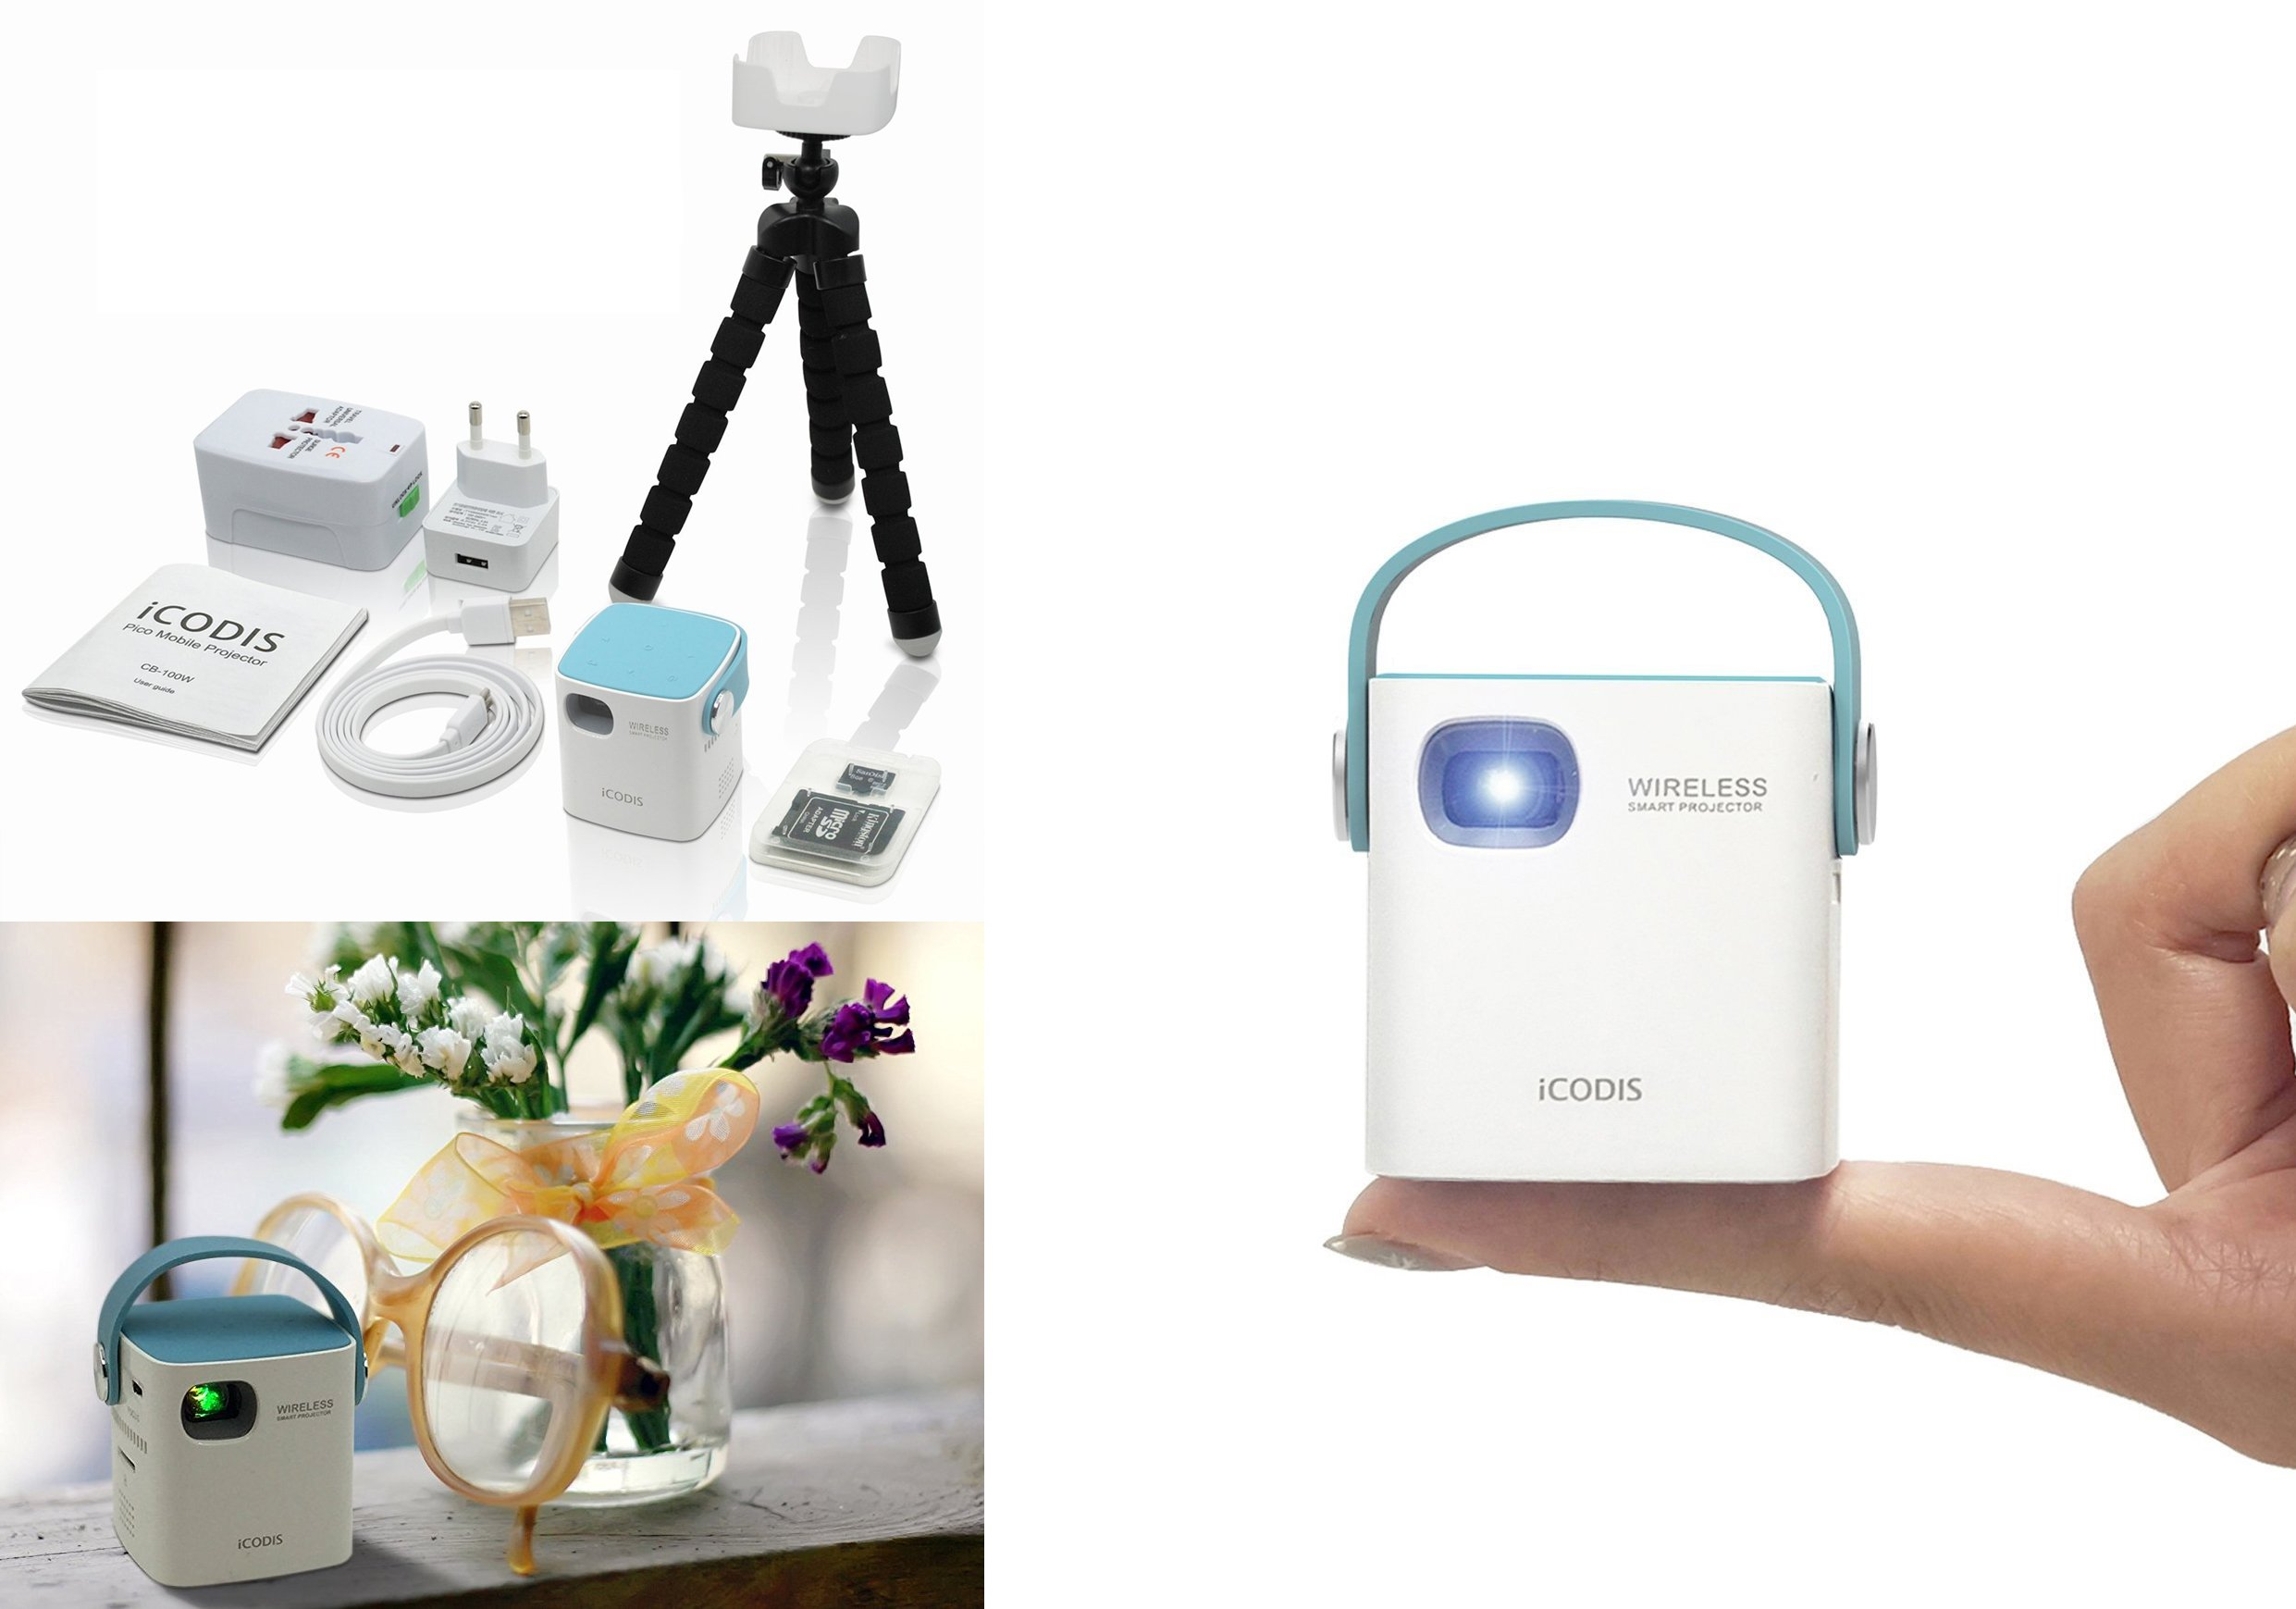 unique-gift-ideas-for-her-icodis-cb-100w-mobile-projector